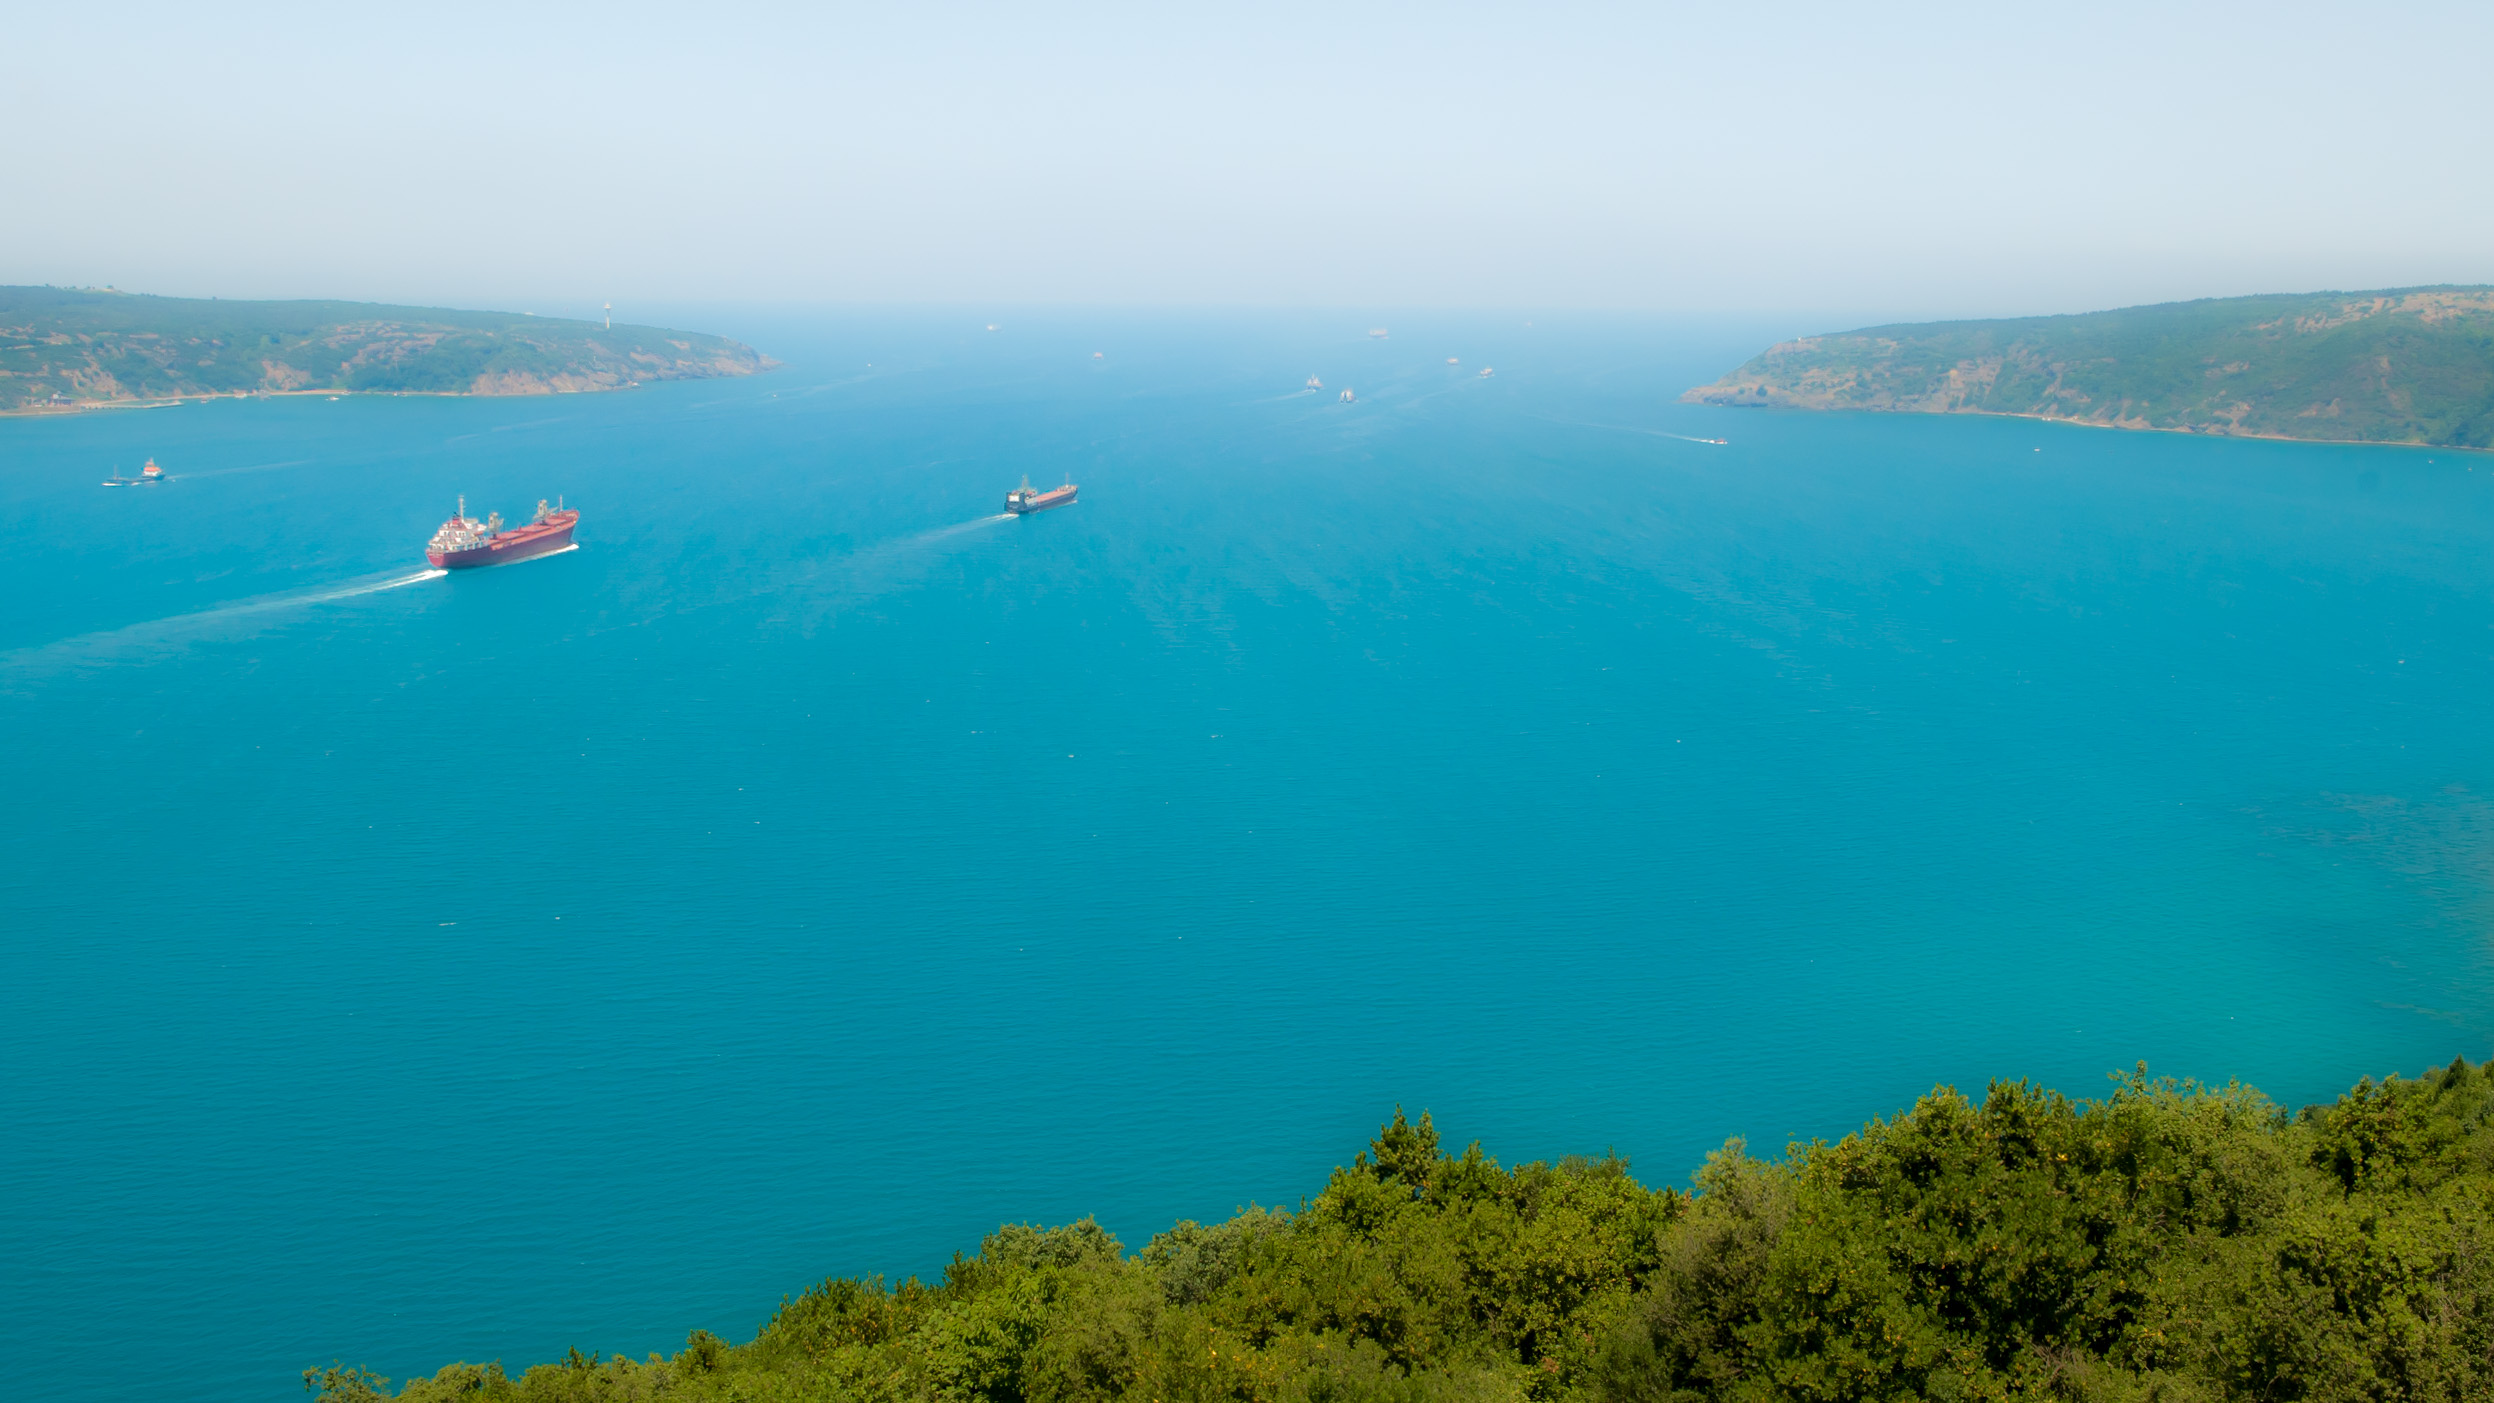 The Bosporus empties into the Black Sea. Left is Europe, right is Asia.